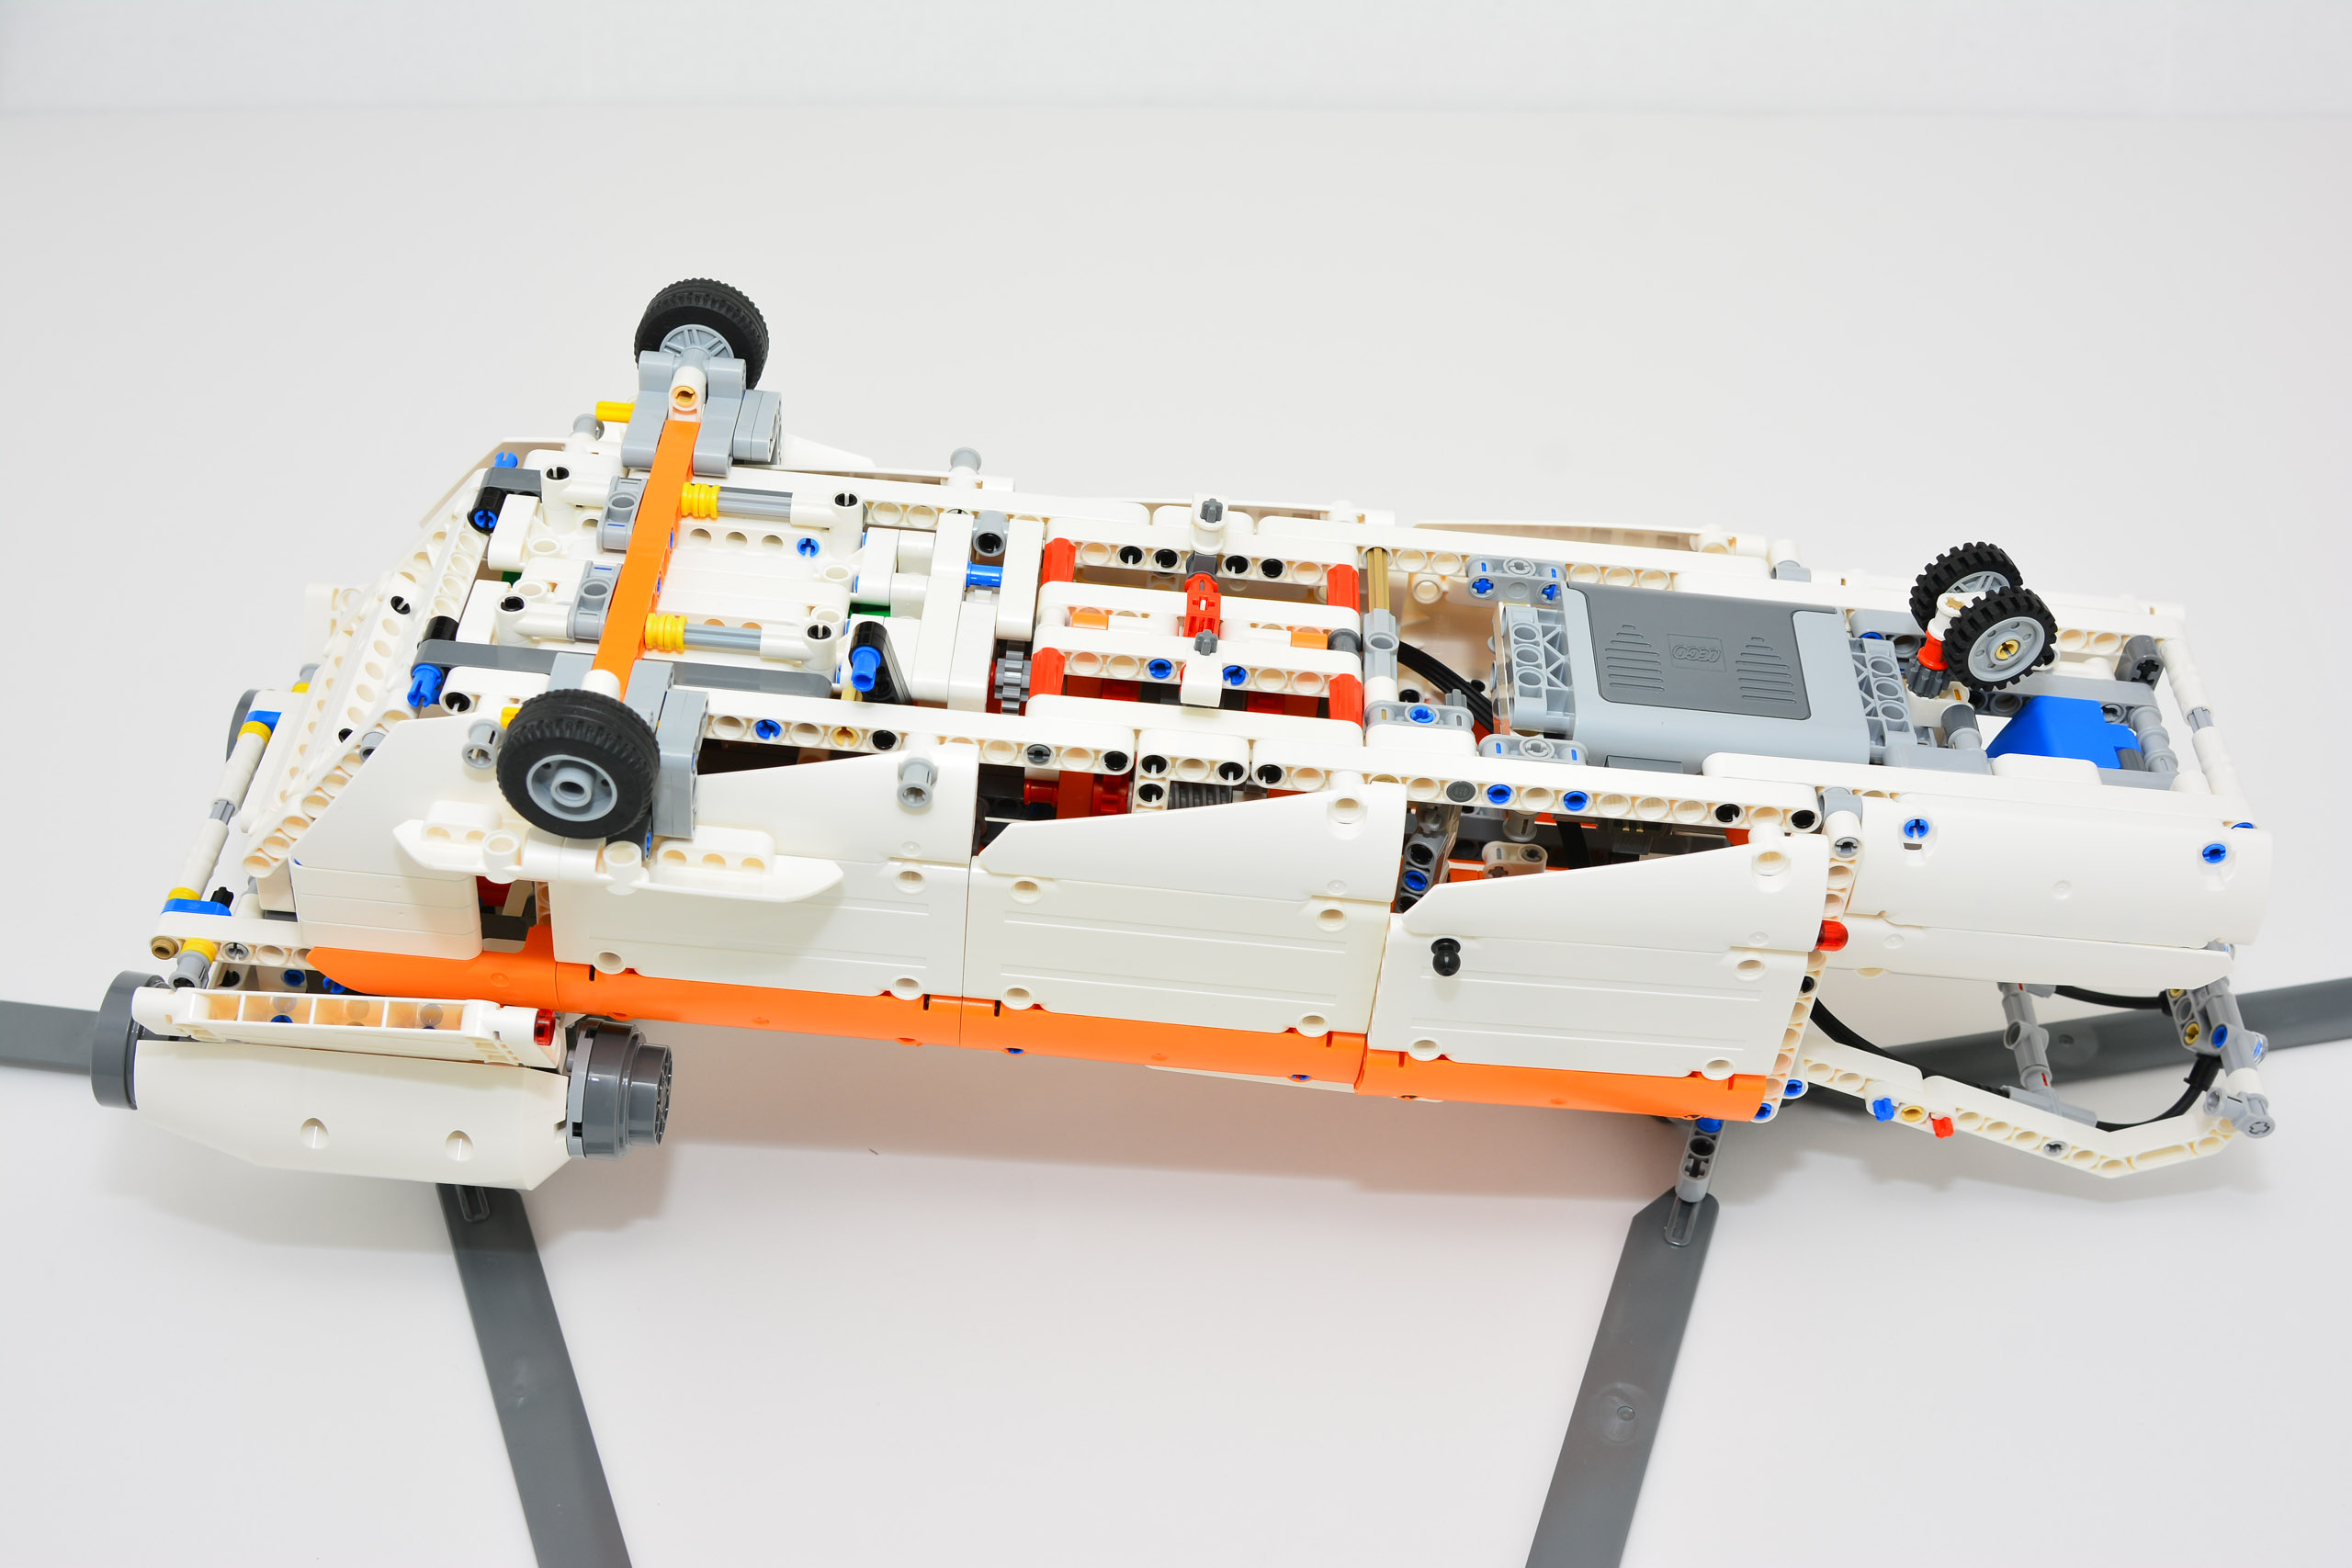 lego 42052 b model instructions